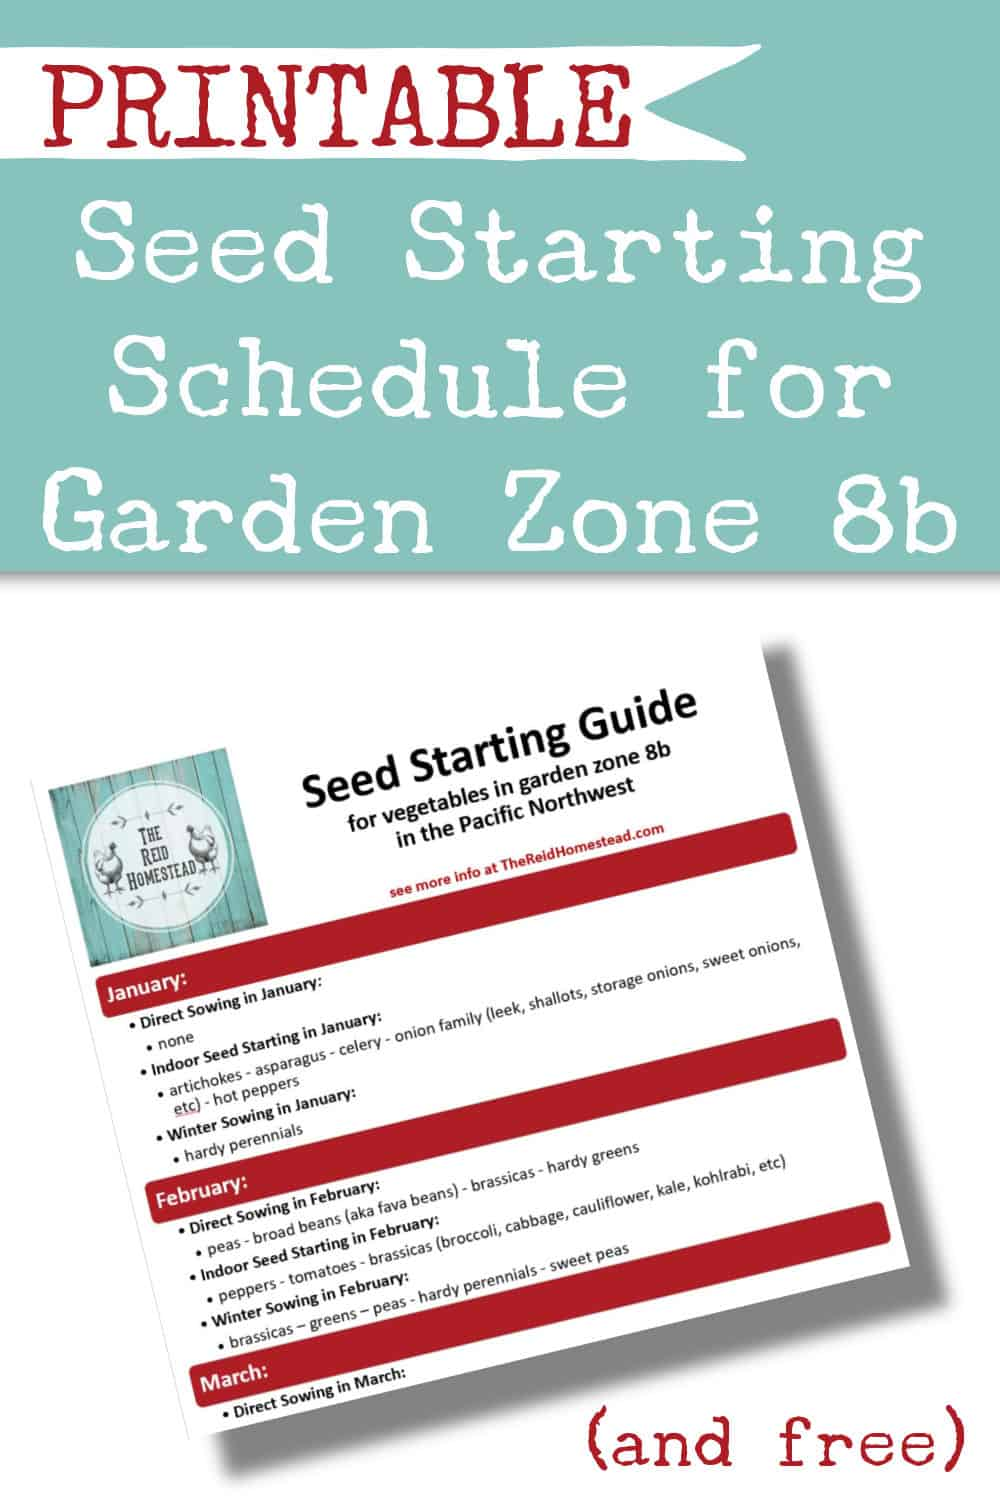 small image of my free seed starting schedule printable with text overlay Printable Seed Starting Schedule for Garden Zone 8b